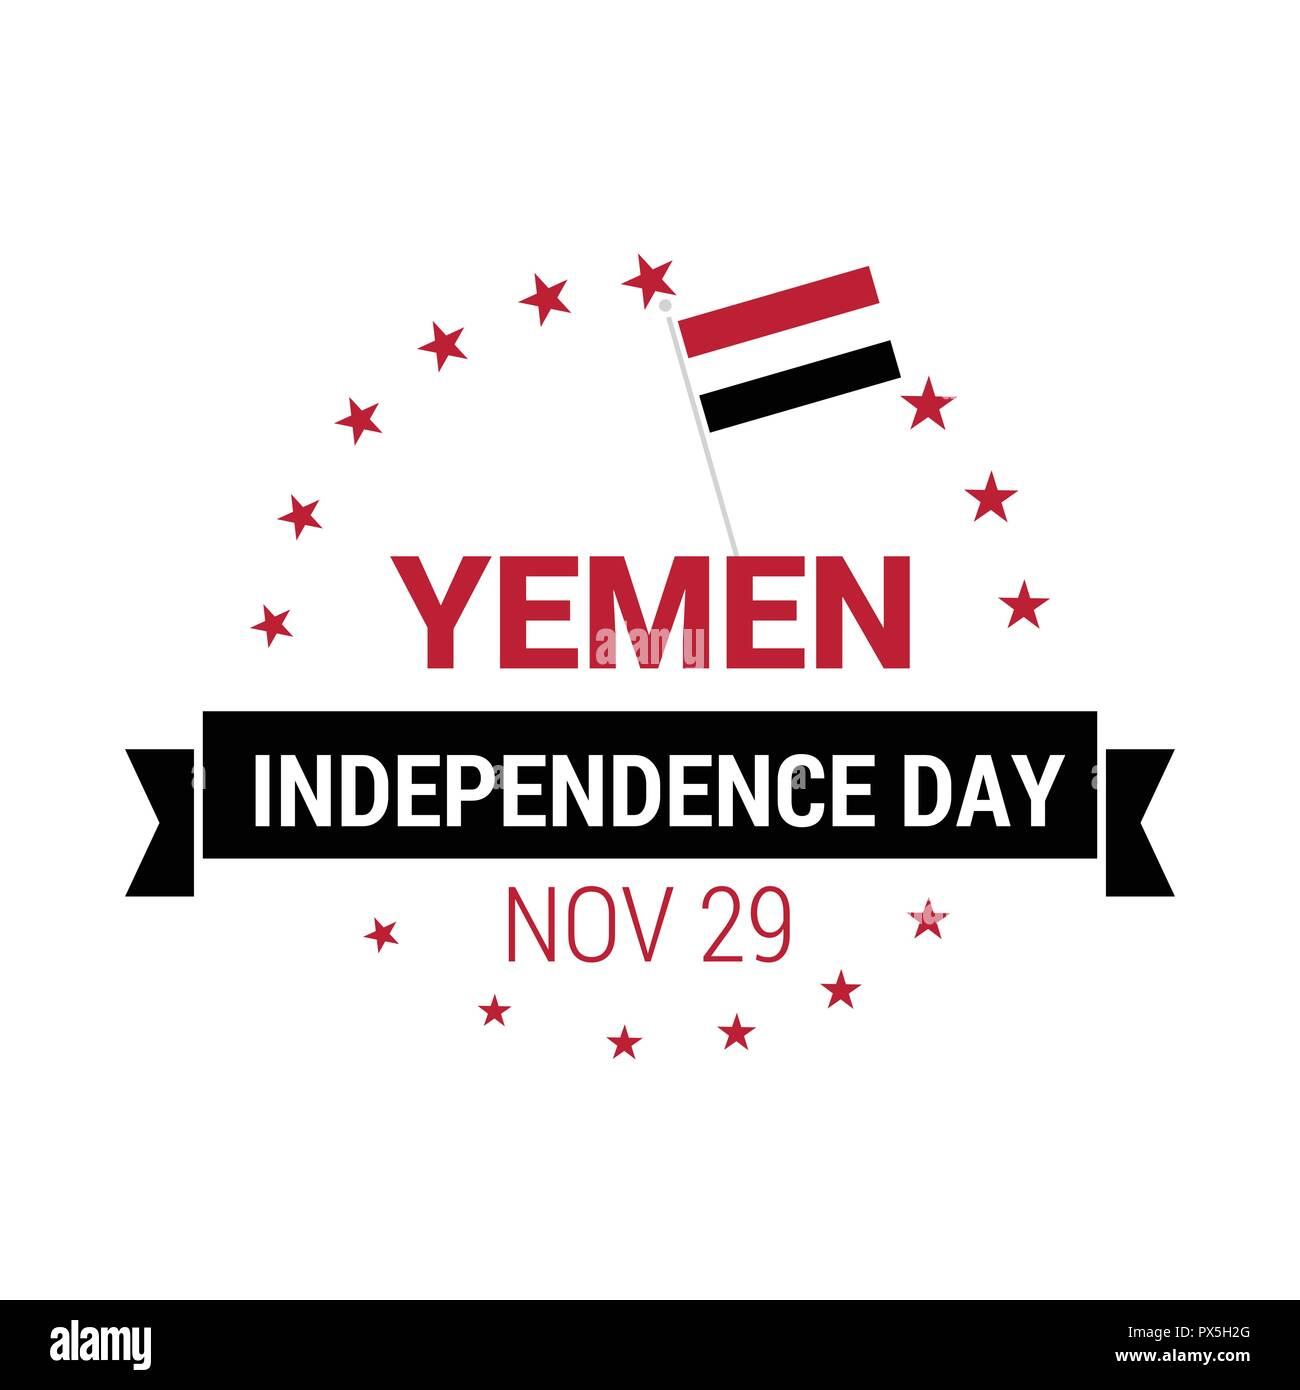 Yemen Independence day design card vector - Stock Image